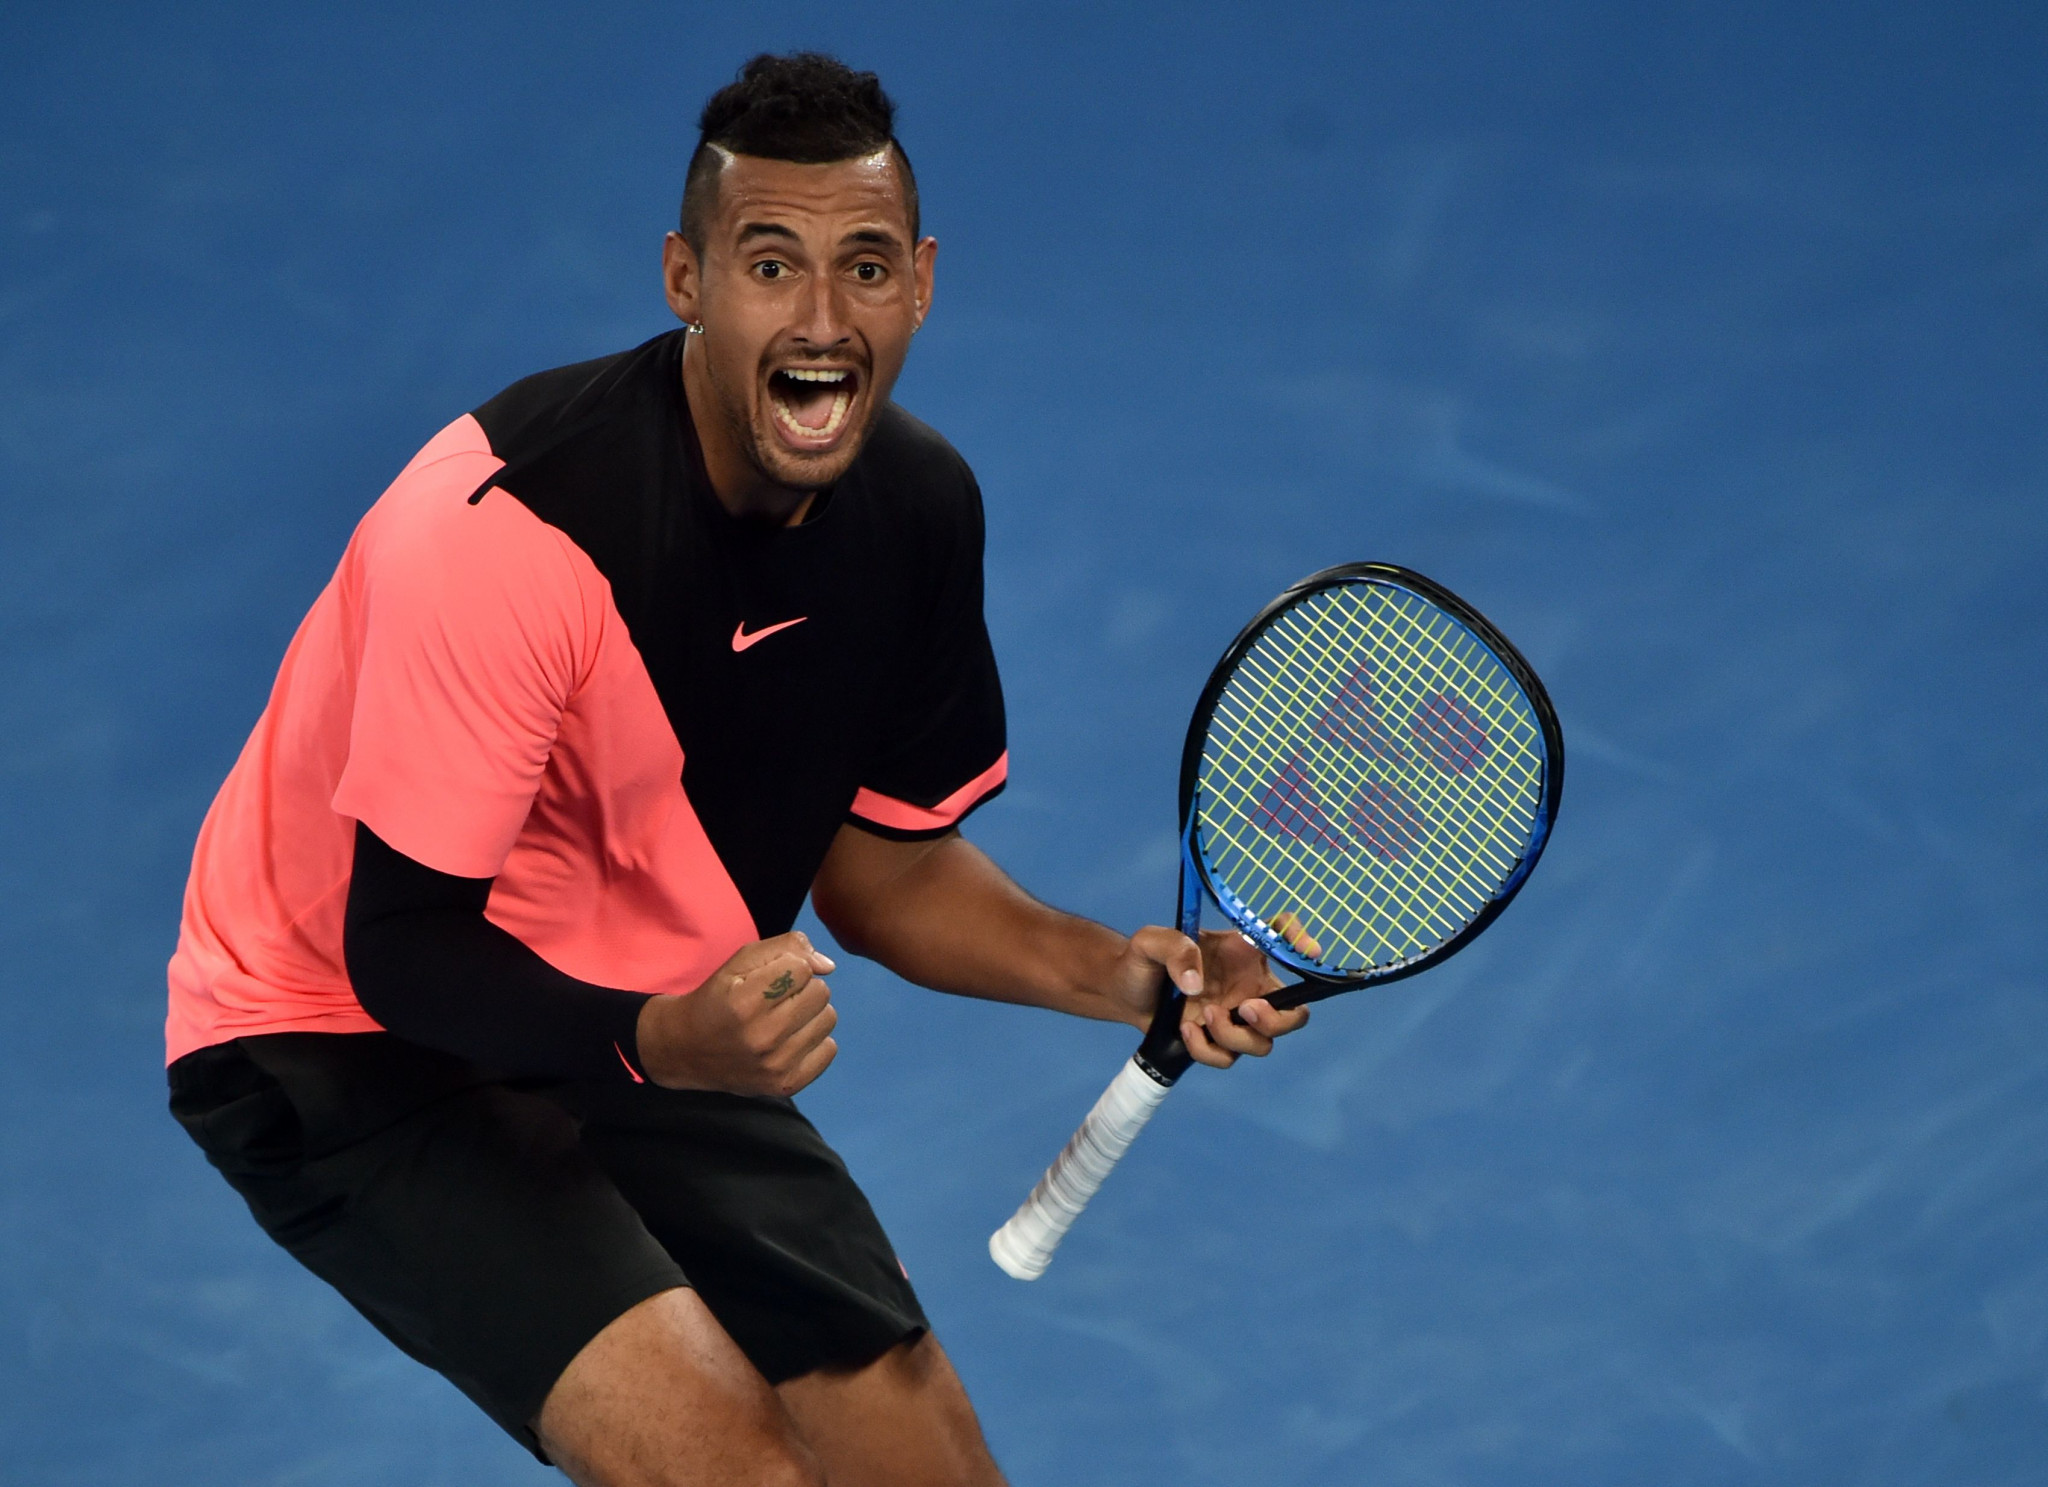 Kyrgios wins on day of extreme heat at Australian Open